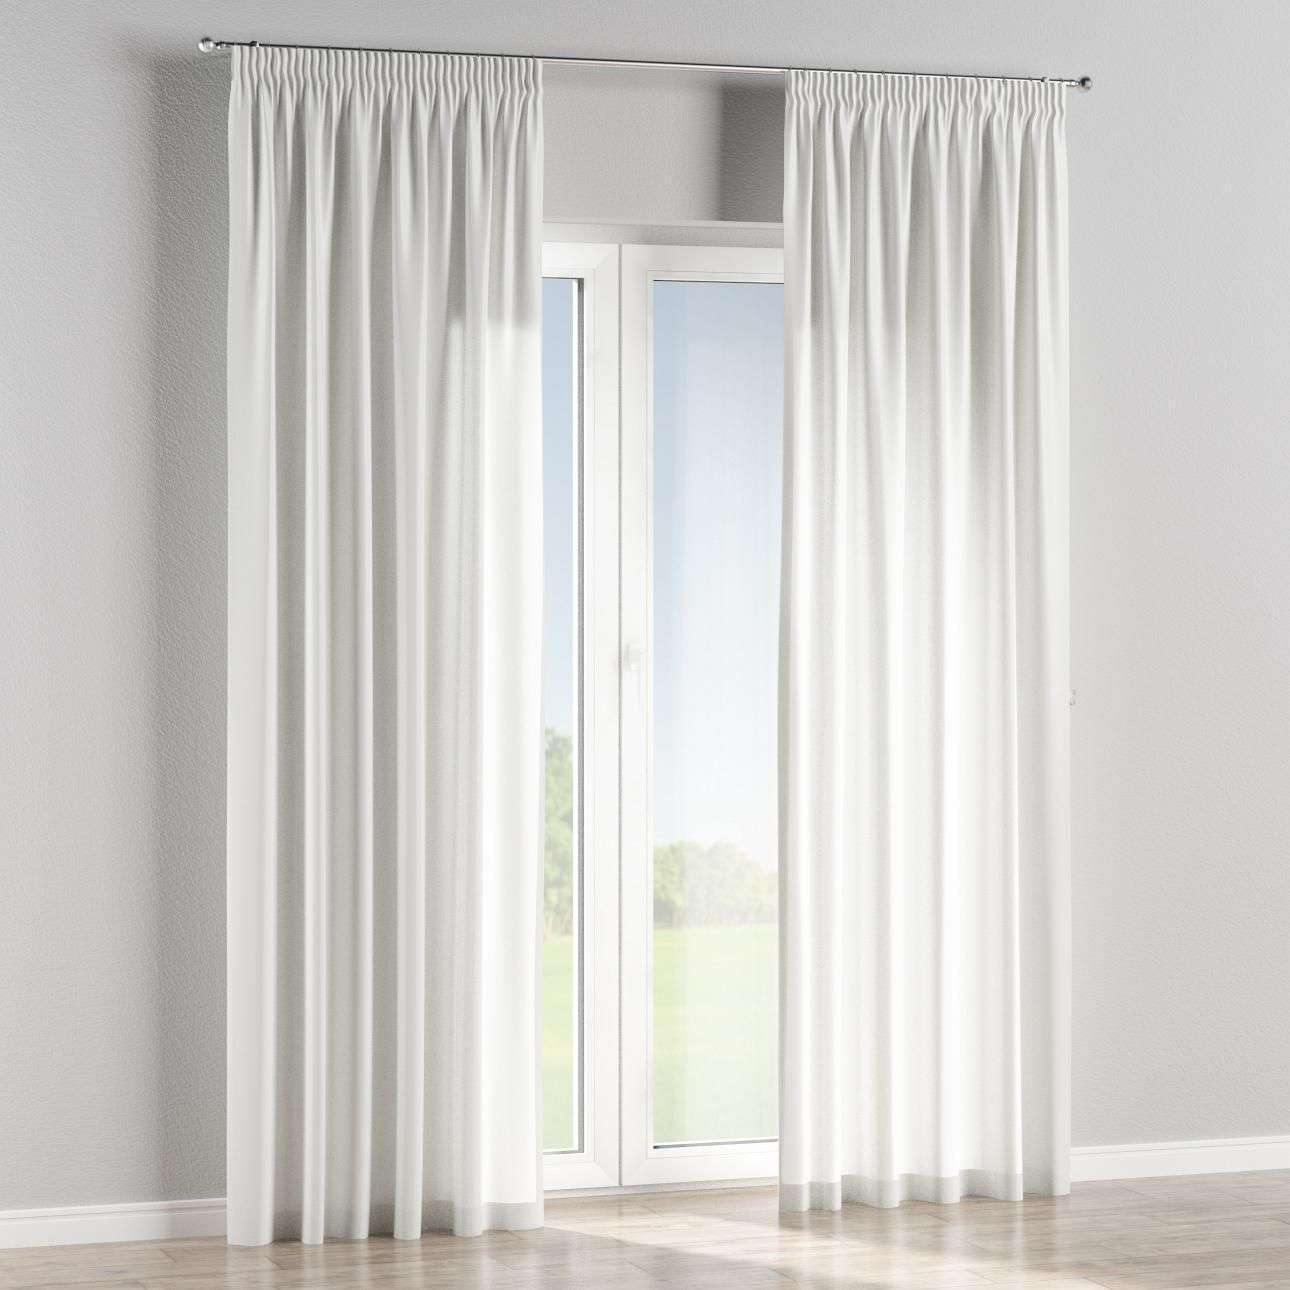 Pencil pleat curtains in collection Milano, fabric: 150-26